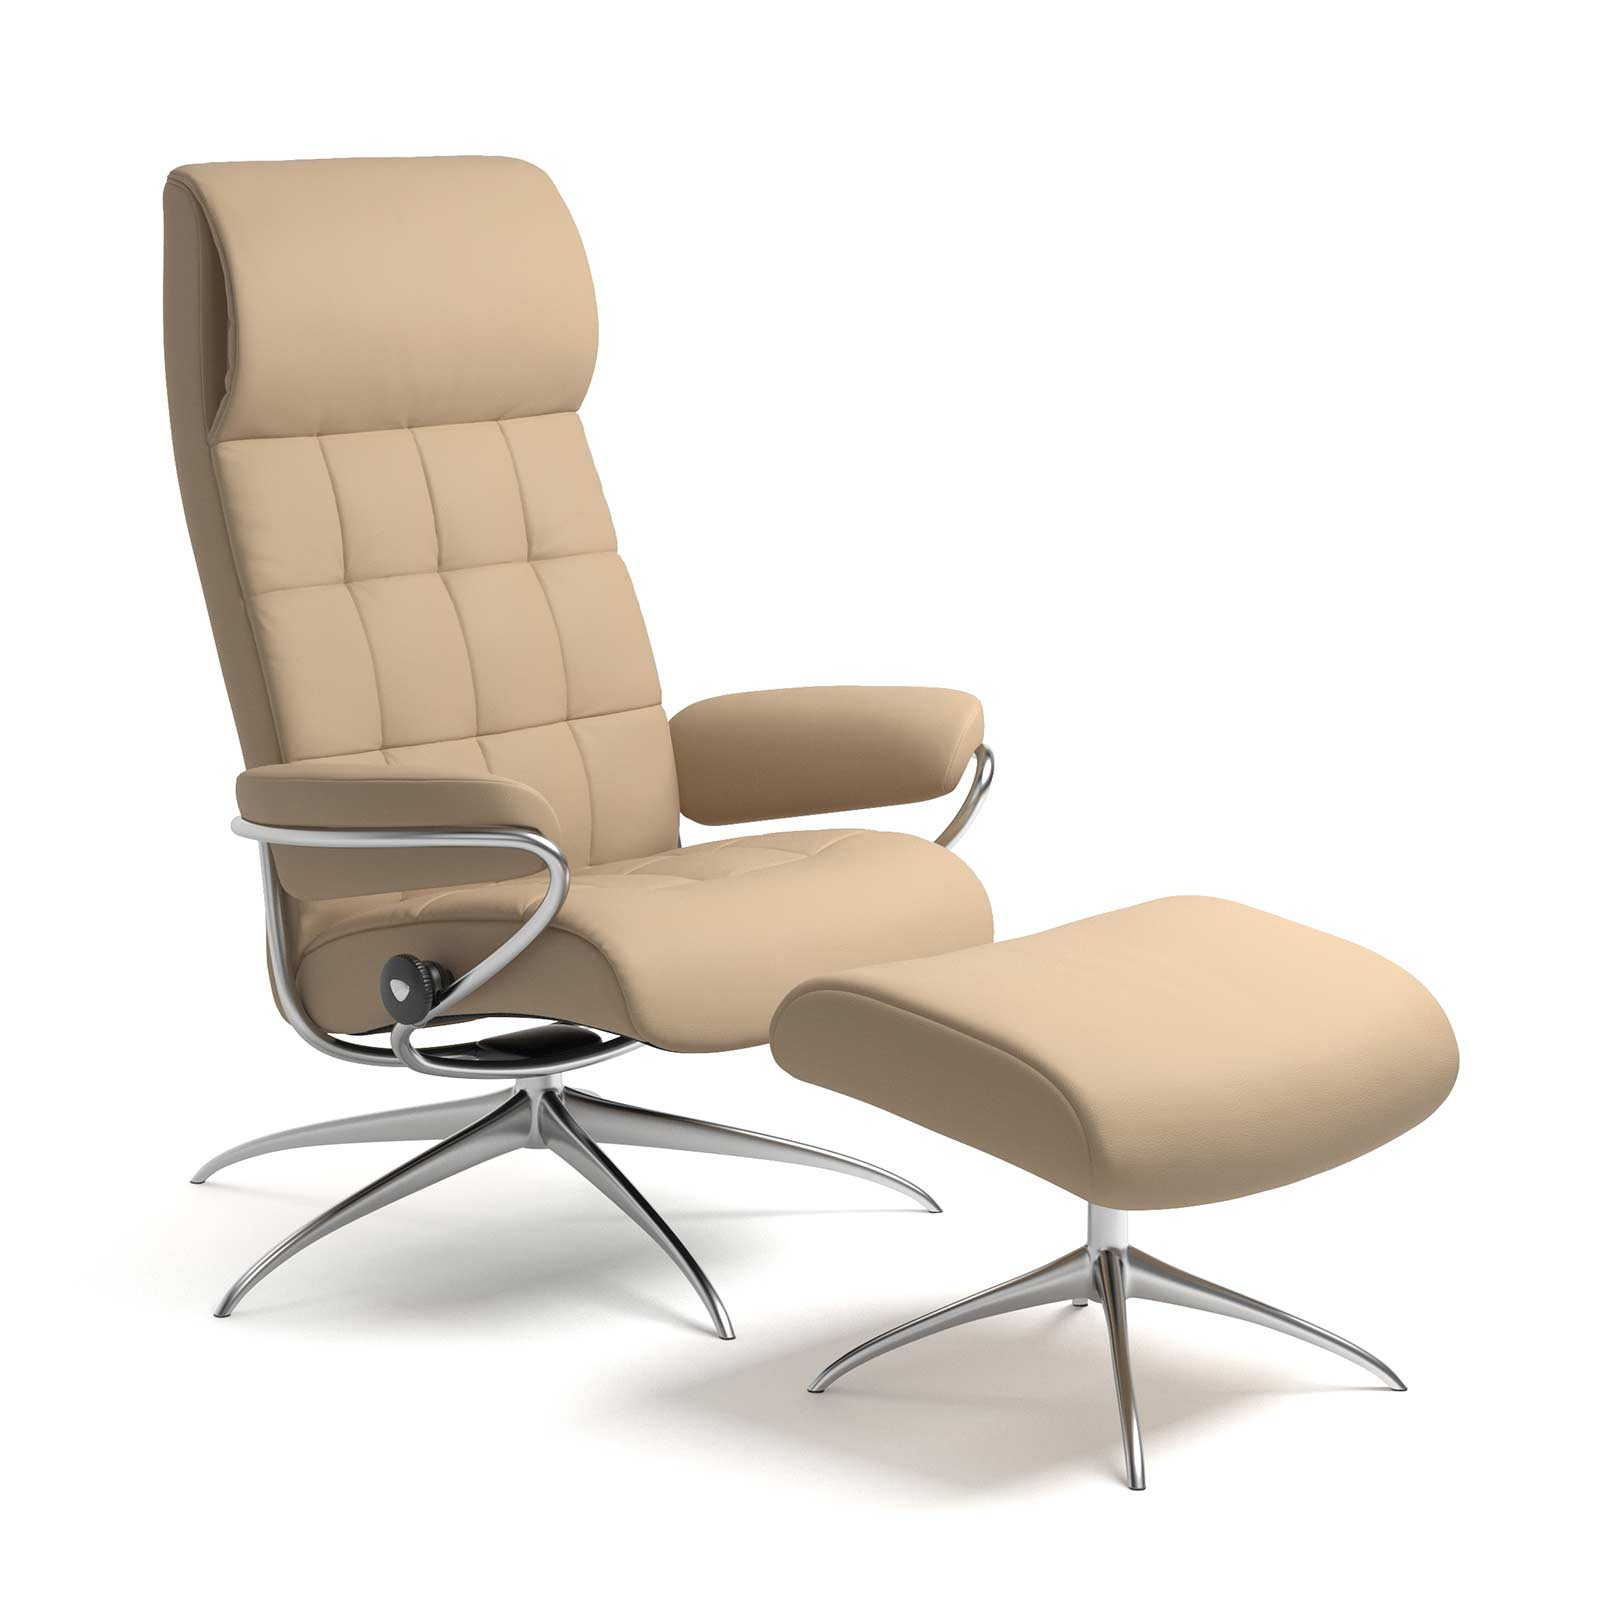 Stressless City Sessel Preis Stressless Sessel London Hohe Lehne Paloma Beige